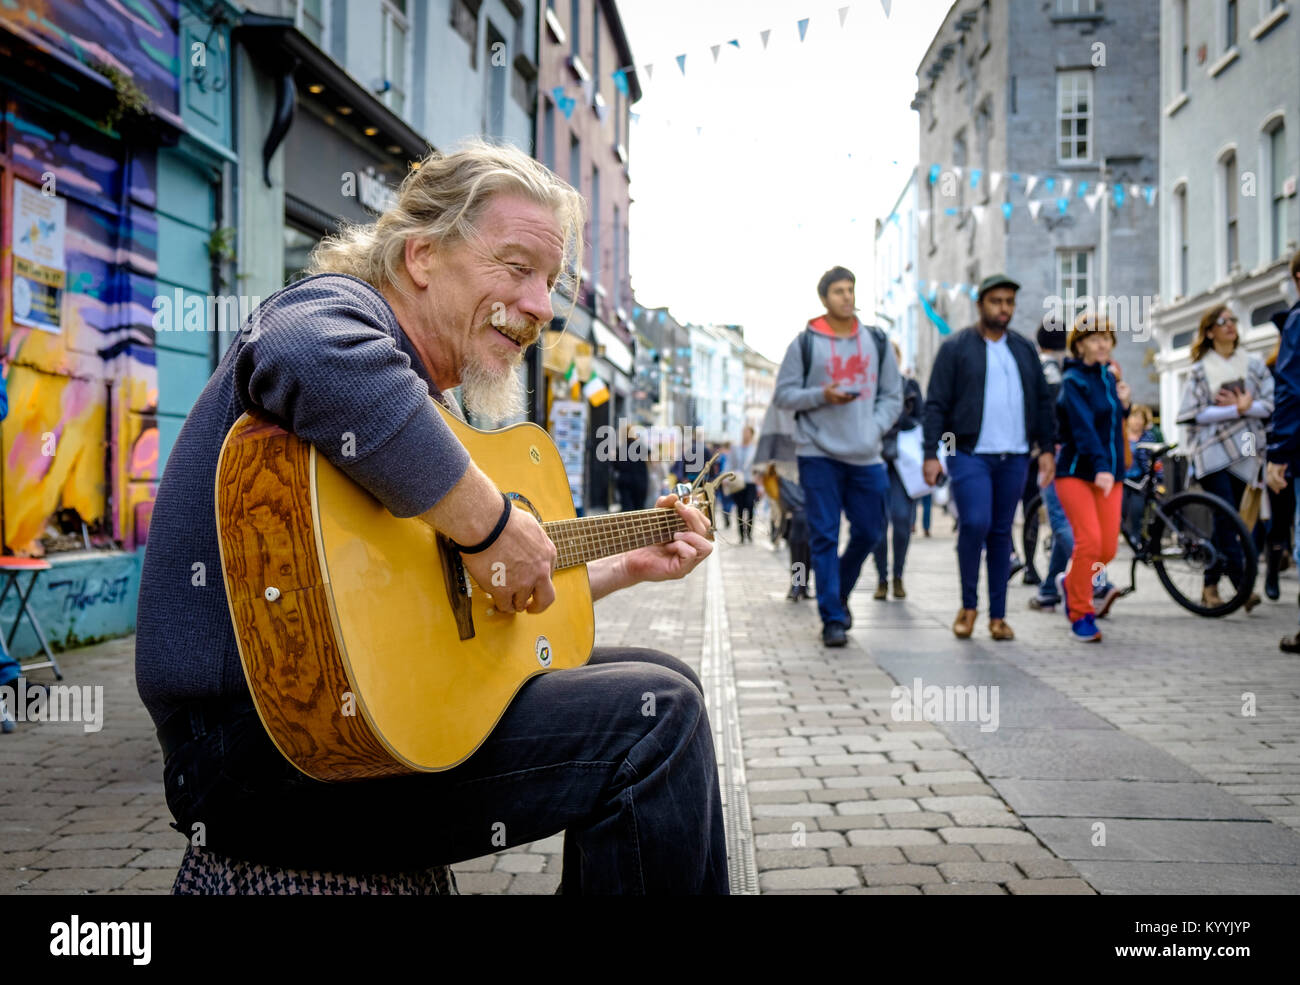 Busker busking on the High Street in the city centre of Galway, Ireland - Stock Image